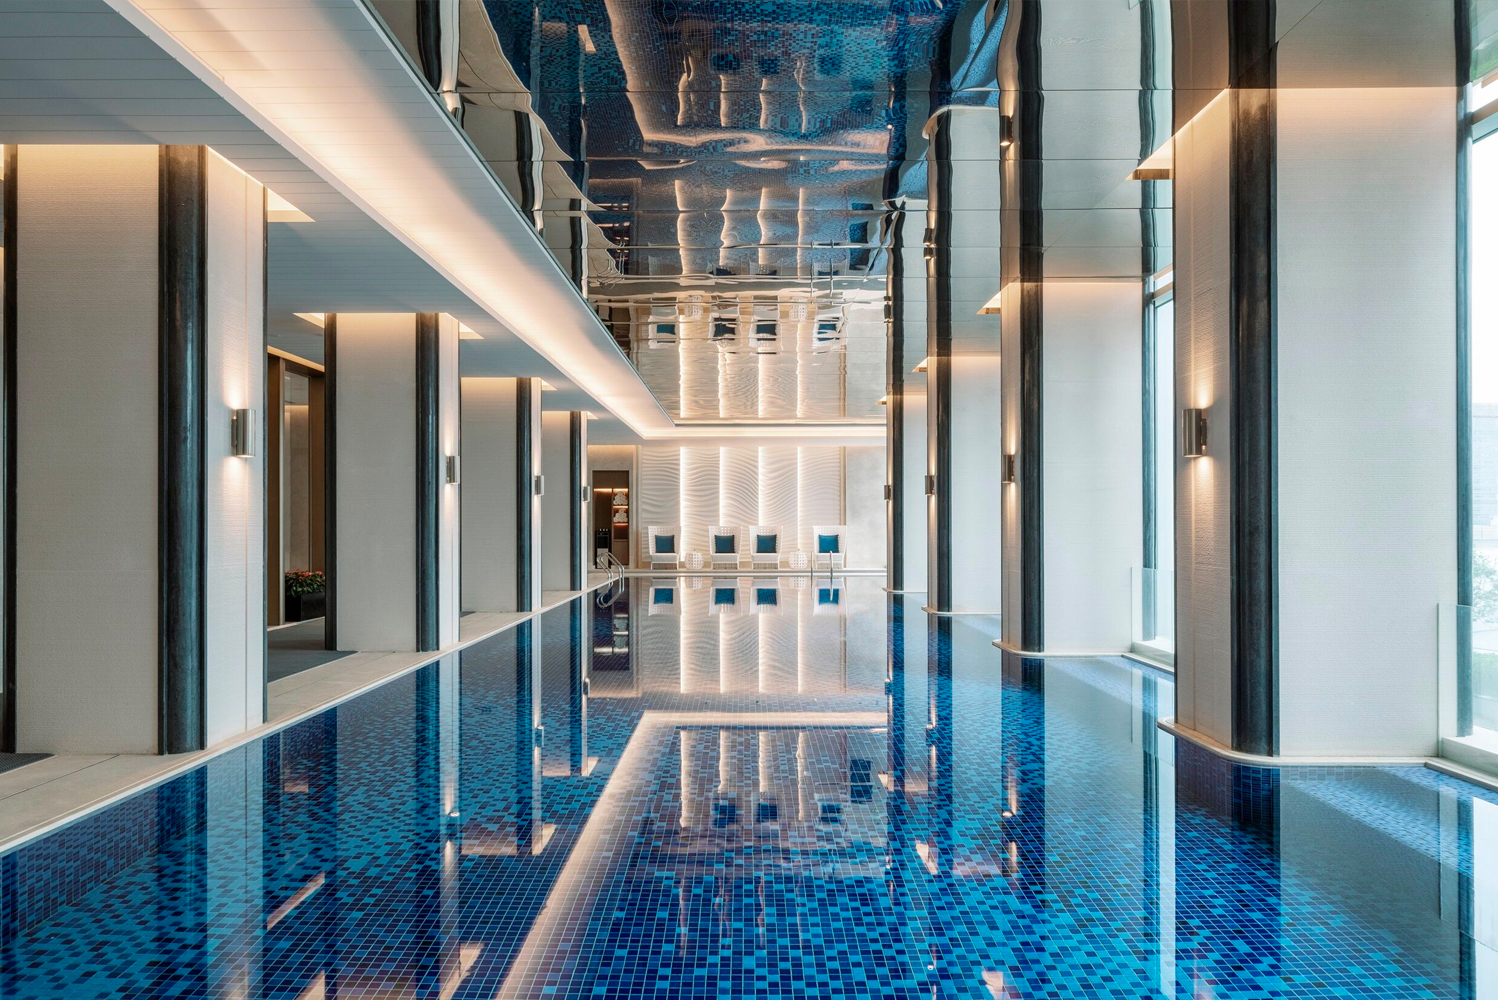 The Health Club and Spa provides a 24-hour gym and a 25-meter indoor temperature-controlled swimming pool.